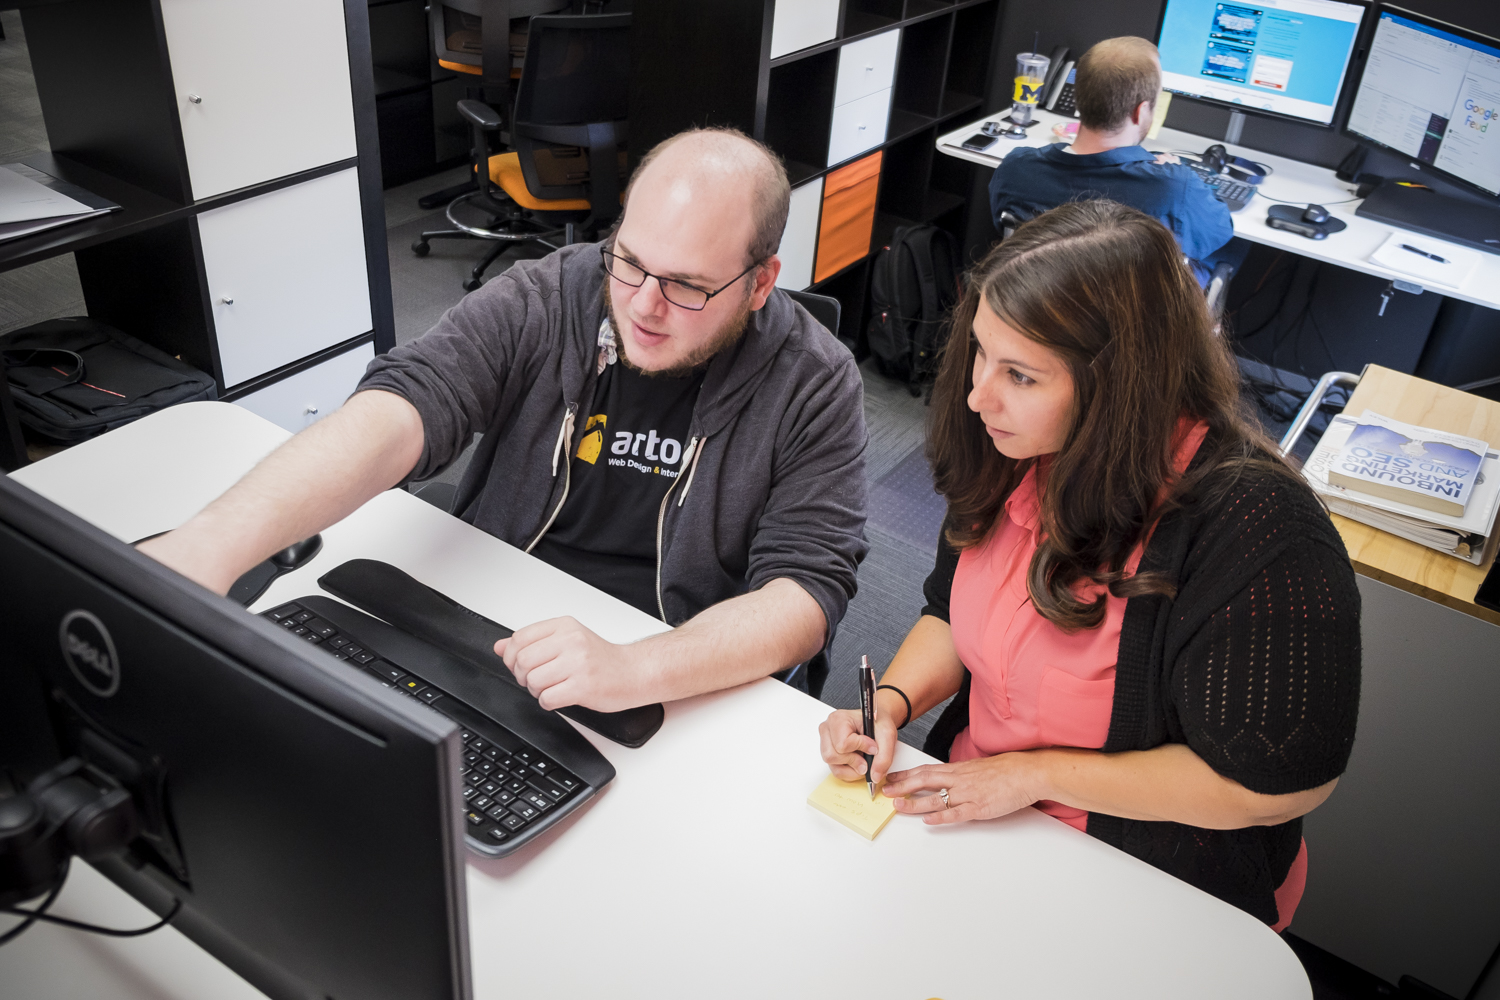 Andy and Angela working together at computer